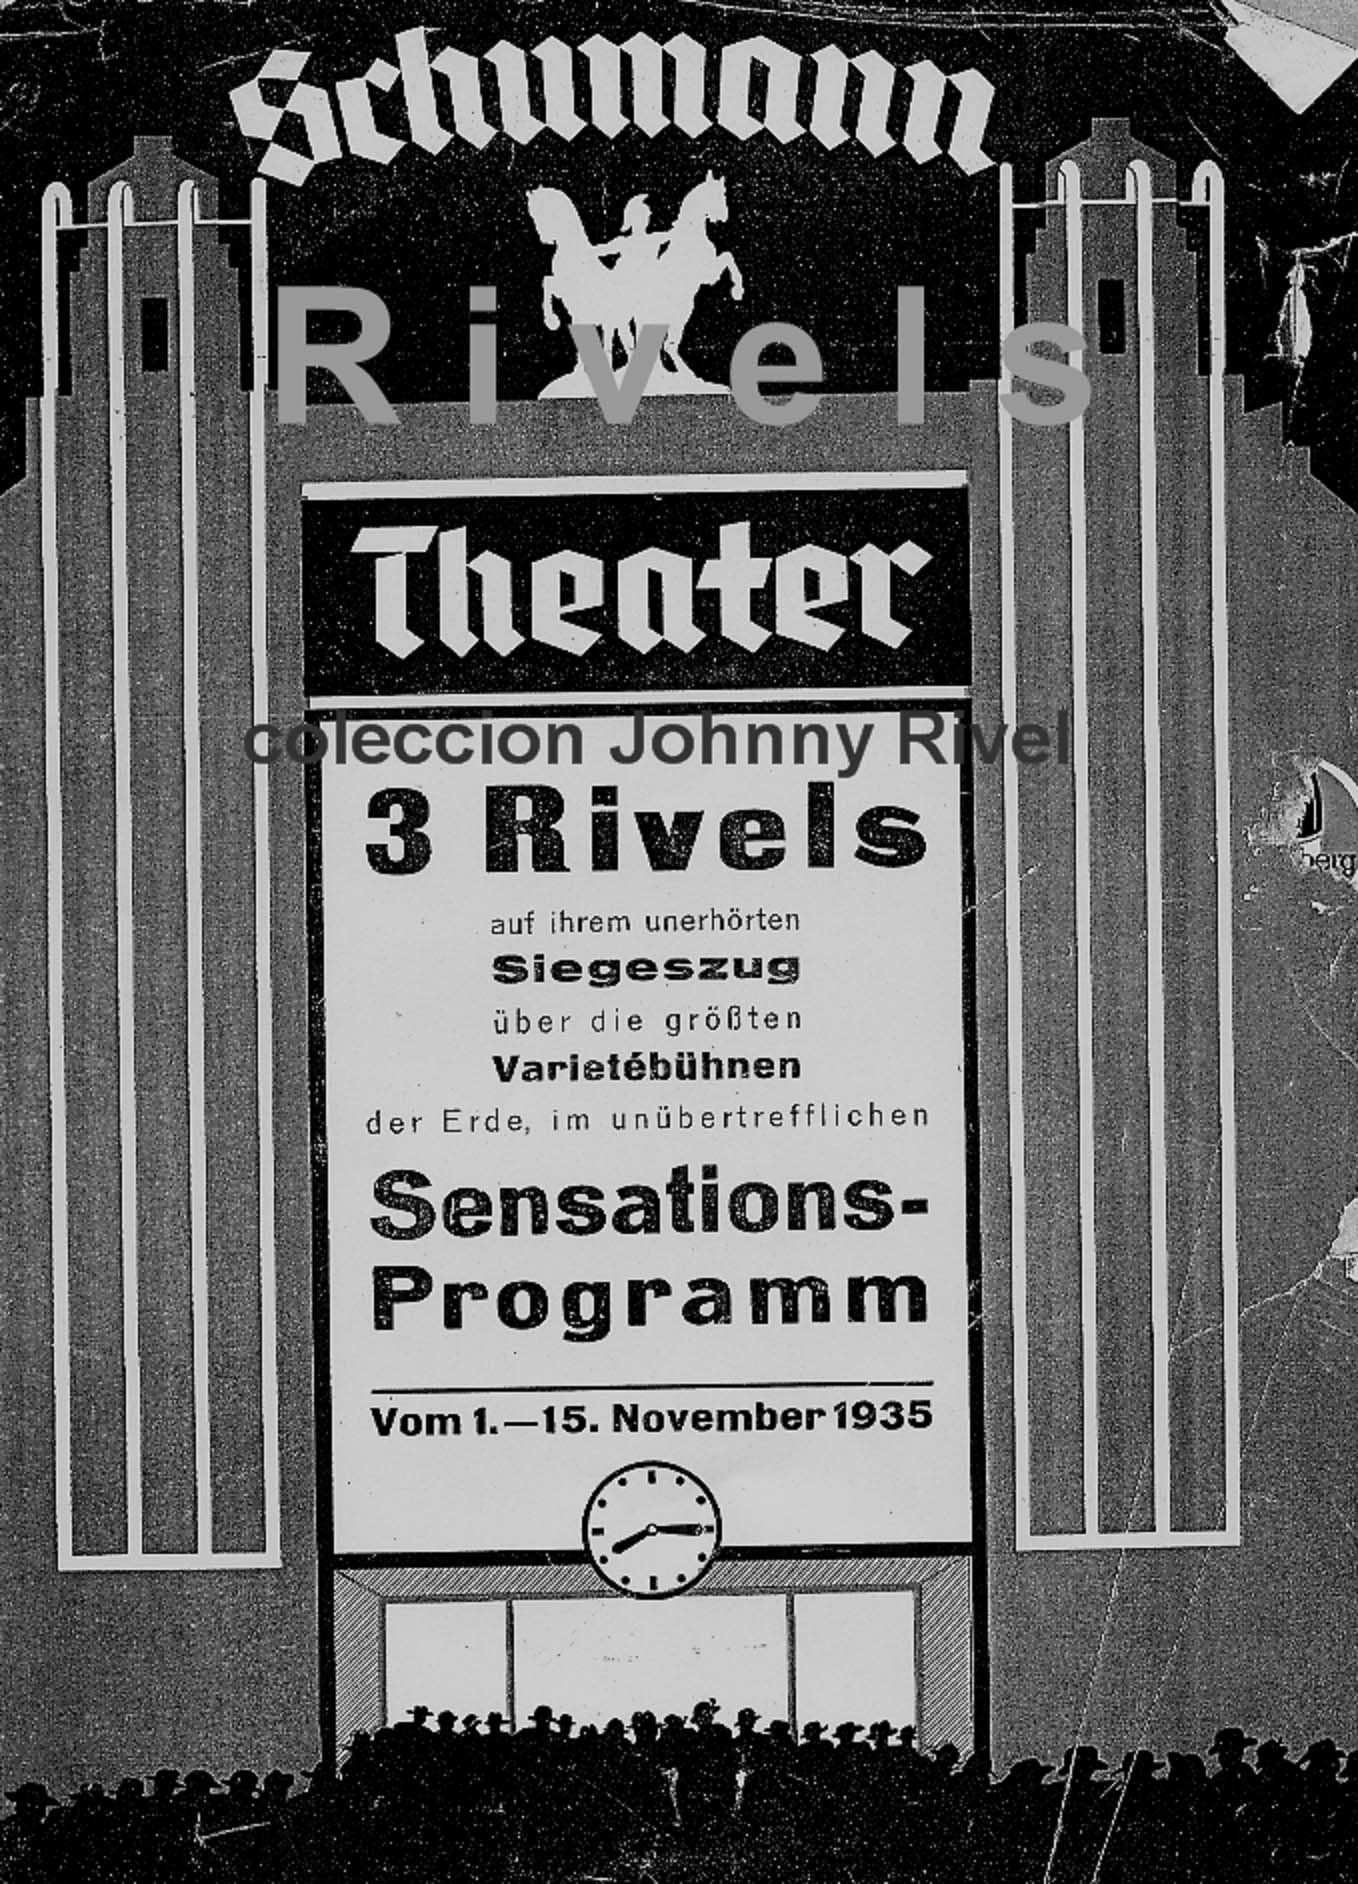 schumann theater 1935  3 Rivels Polo Rene Charlie  Foto Colecion Johnny Rivel www.andreu-rivel.com